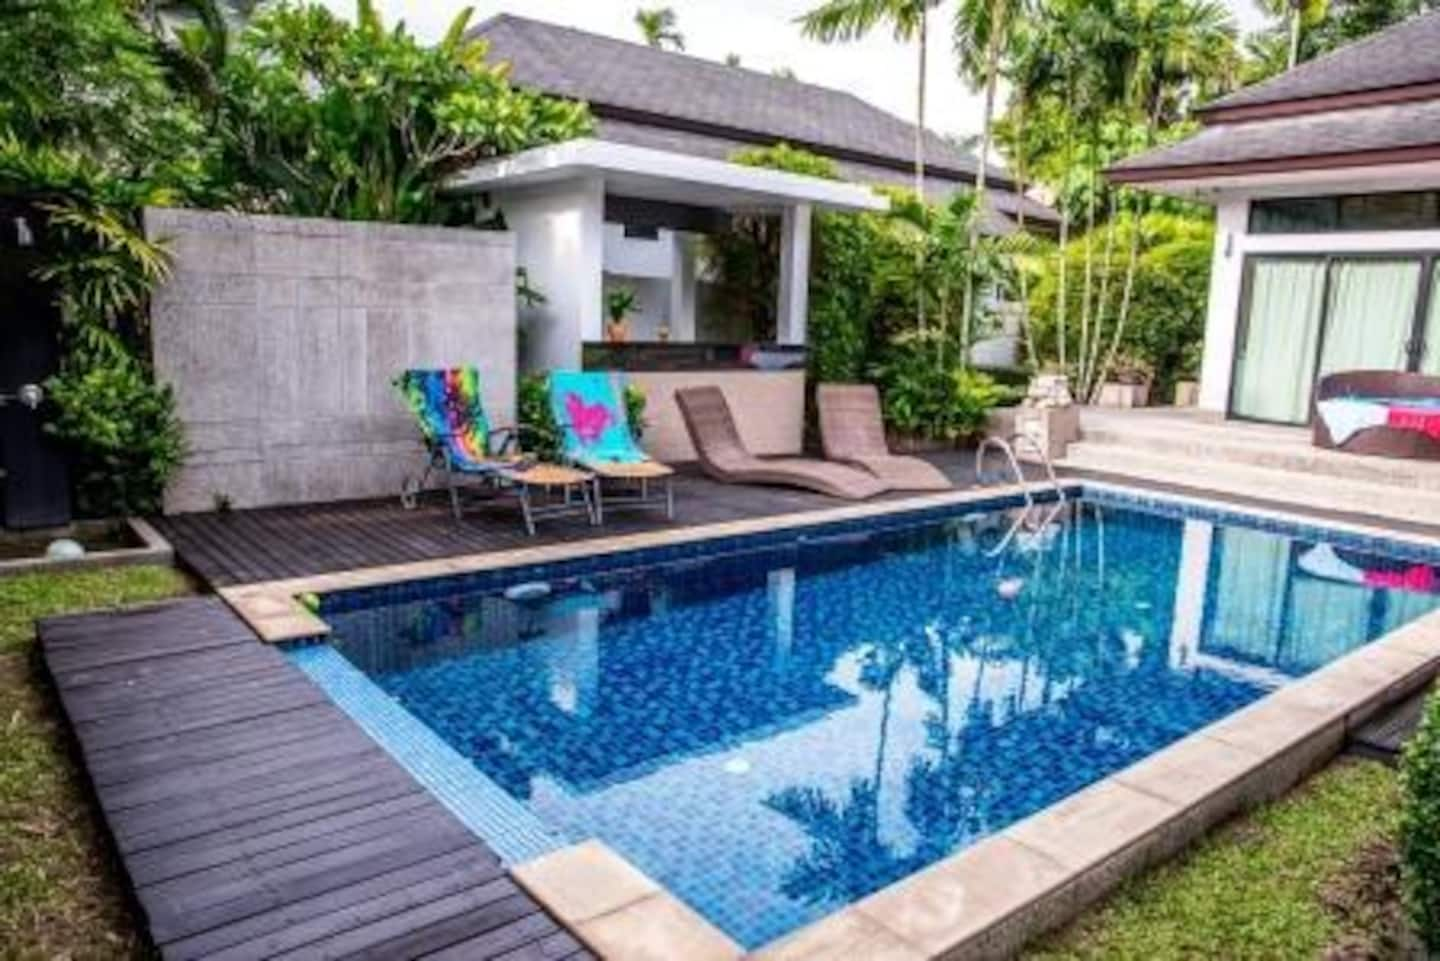 3 Bedrooms Private Pool Villa (ID: CG-073)